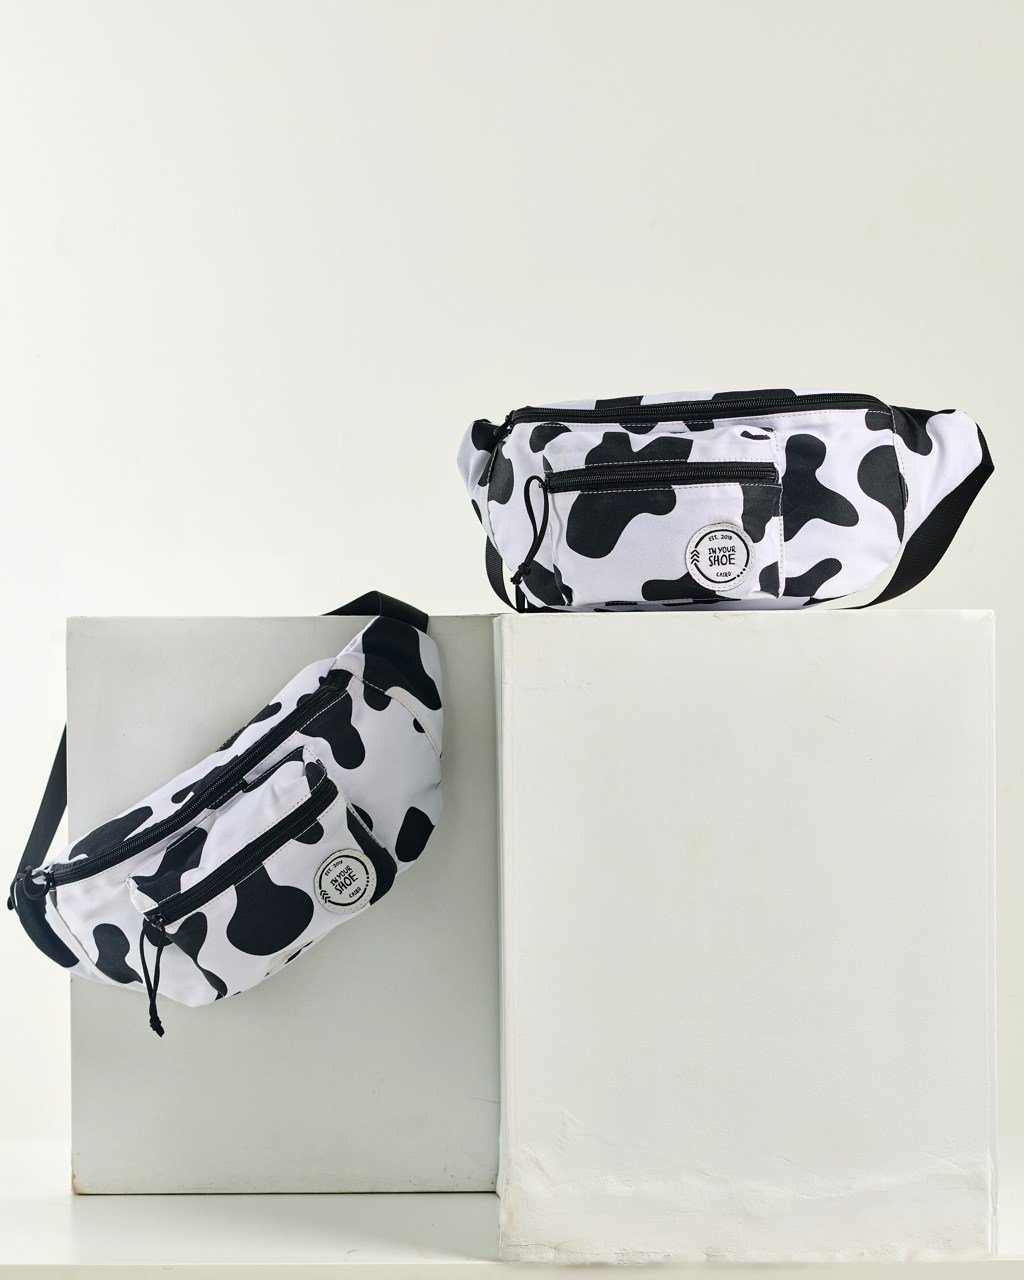 THE MOO FANNY PACK IN YOUR SHOE